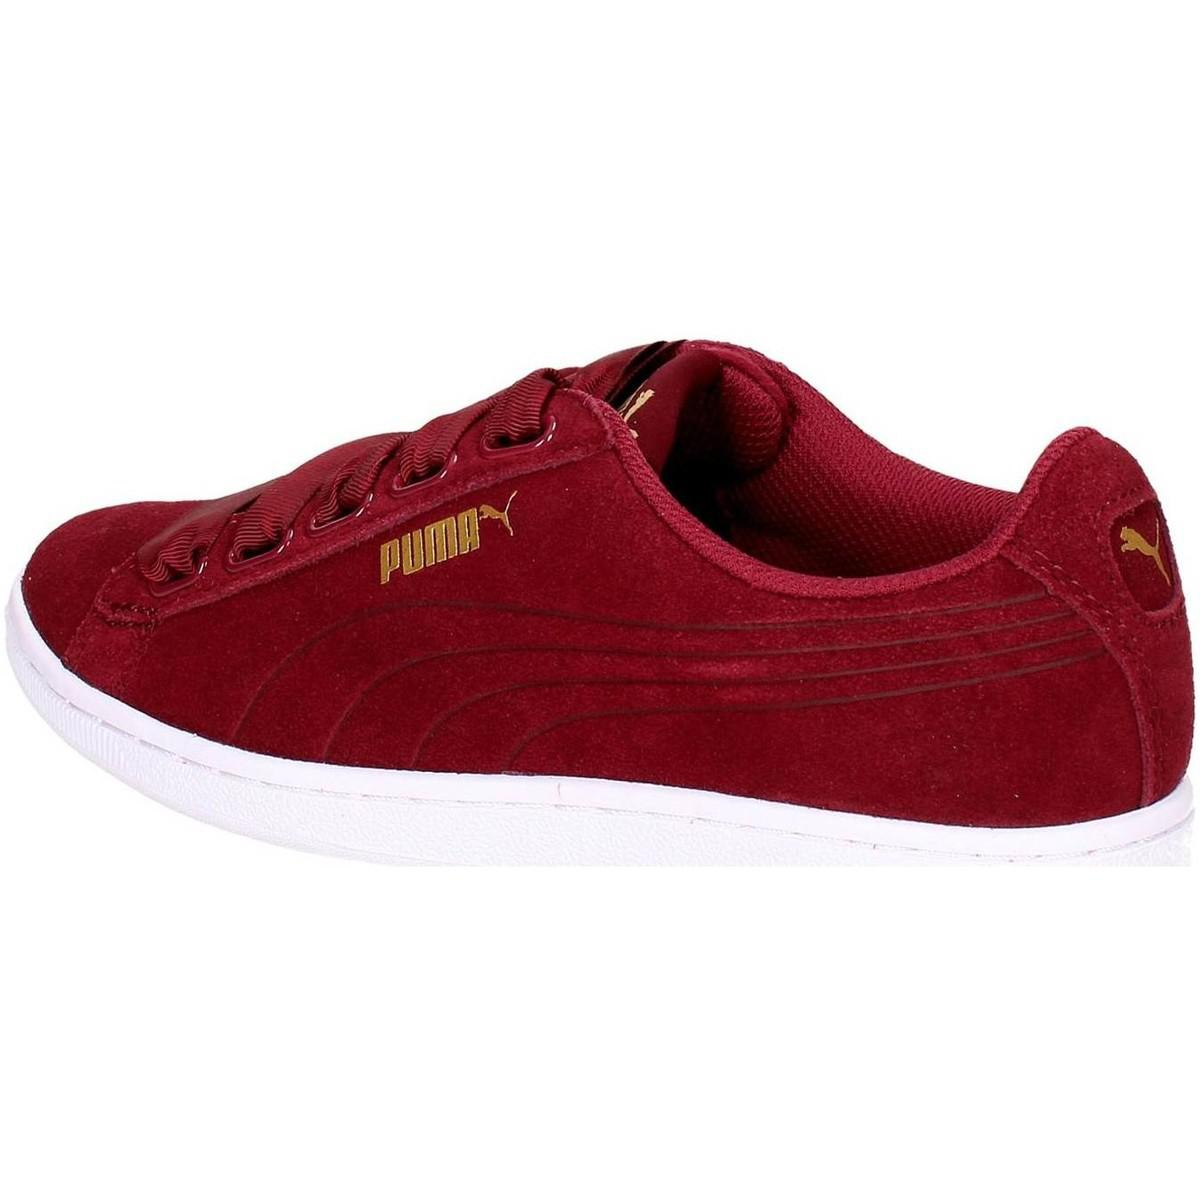 PUMA 364262 03 Low Sneakers Women Burgundy Women s Shoes (trainers ... aeae36fba